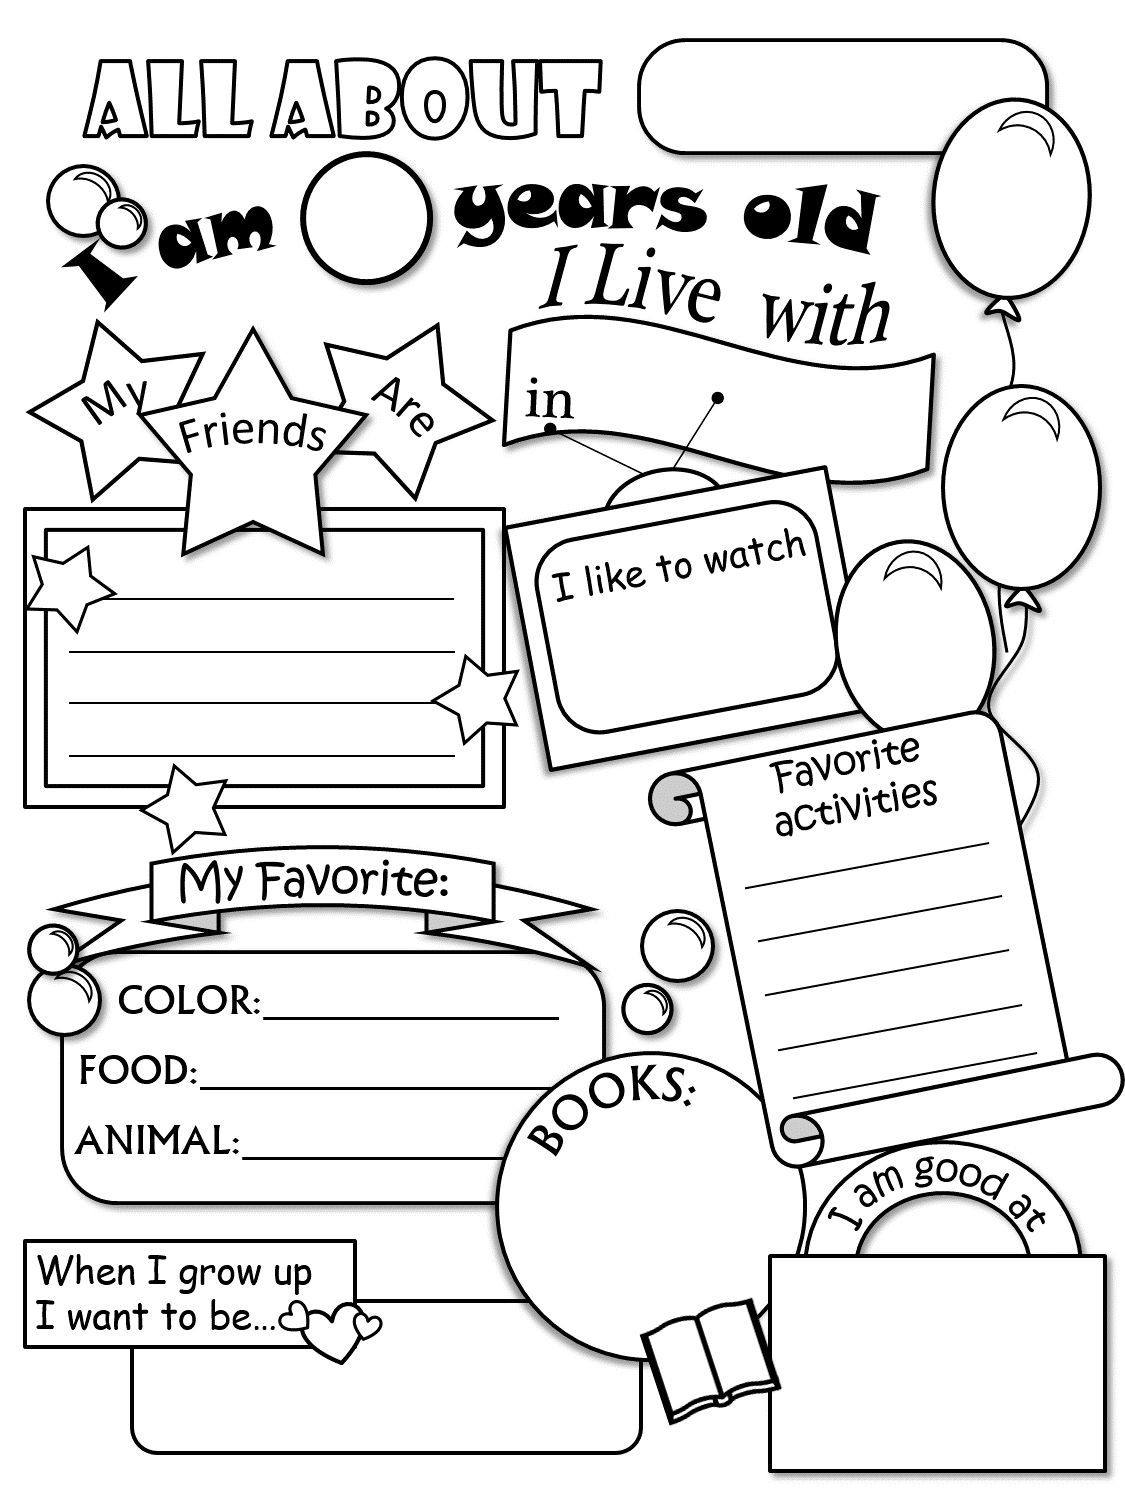 worksheet All About Me Worksheet Free 78 images about art and craft ideas ks1 on pinterest cute projects key stage 2 paper plate crafts